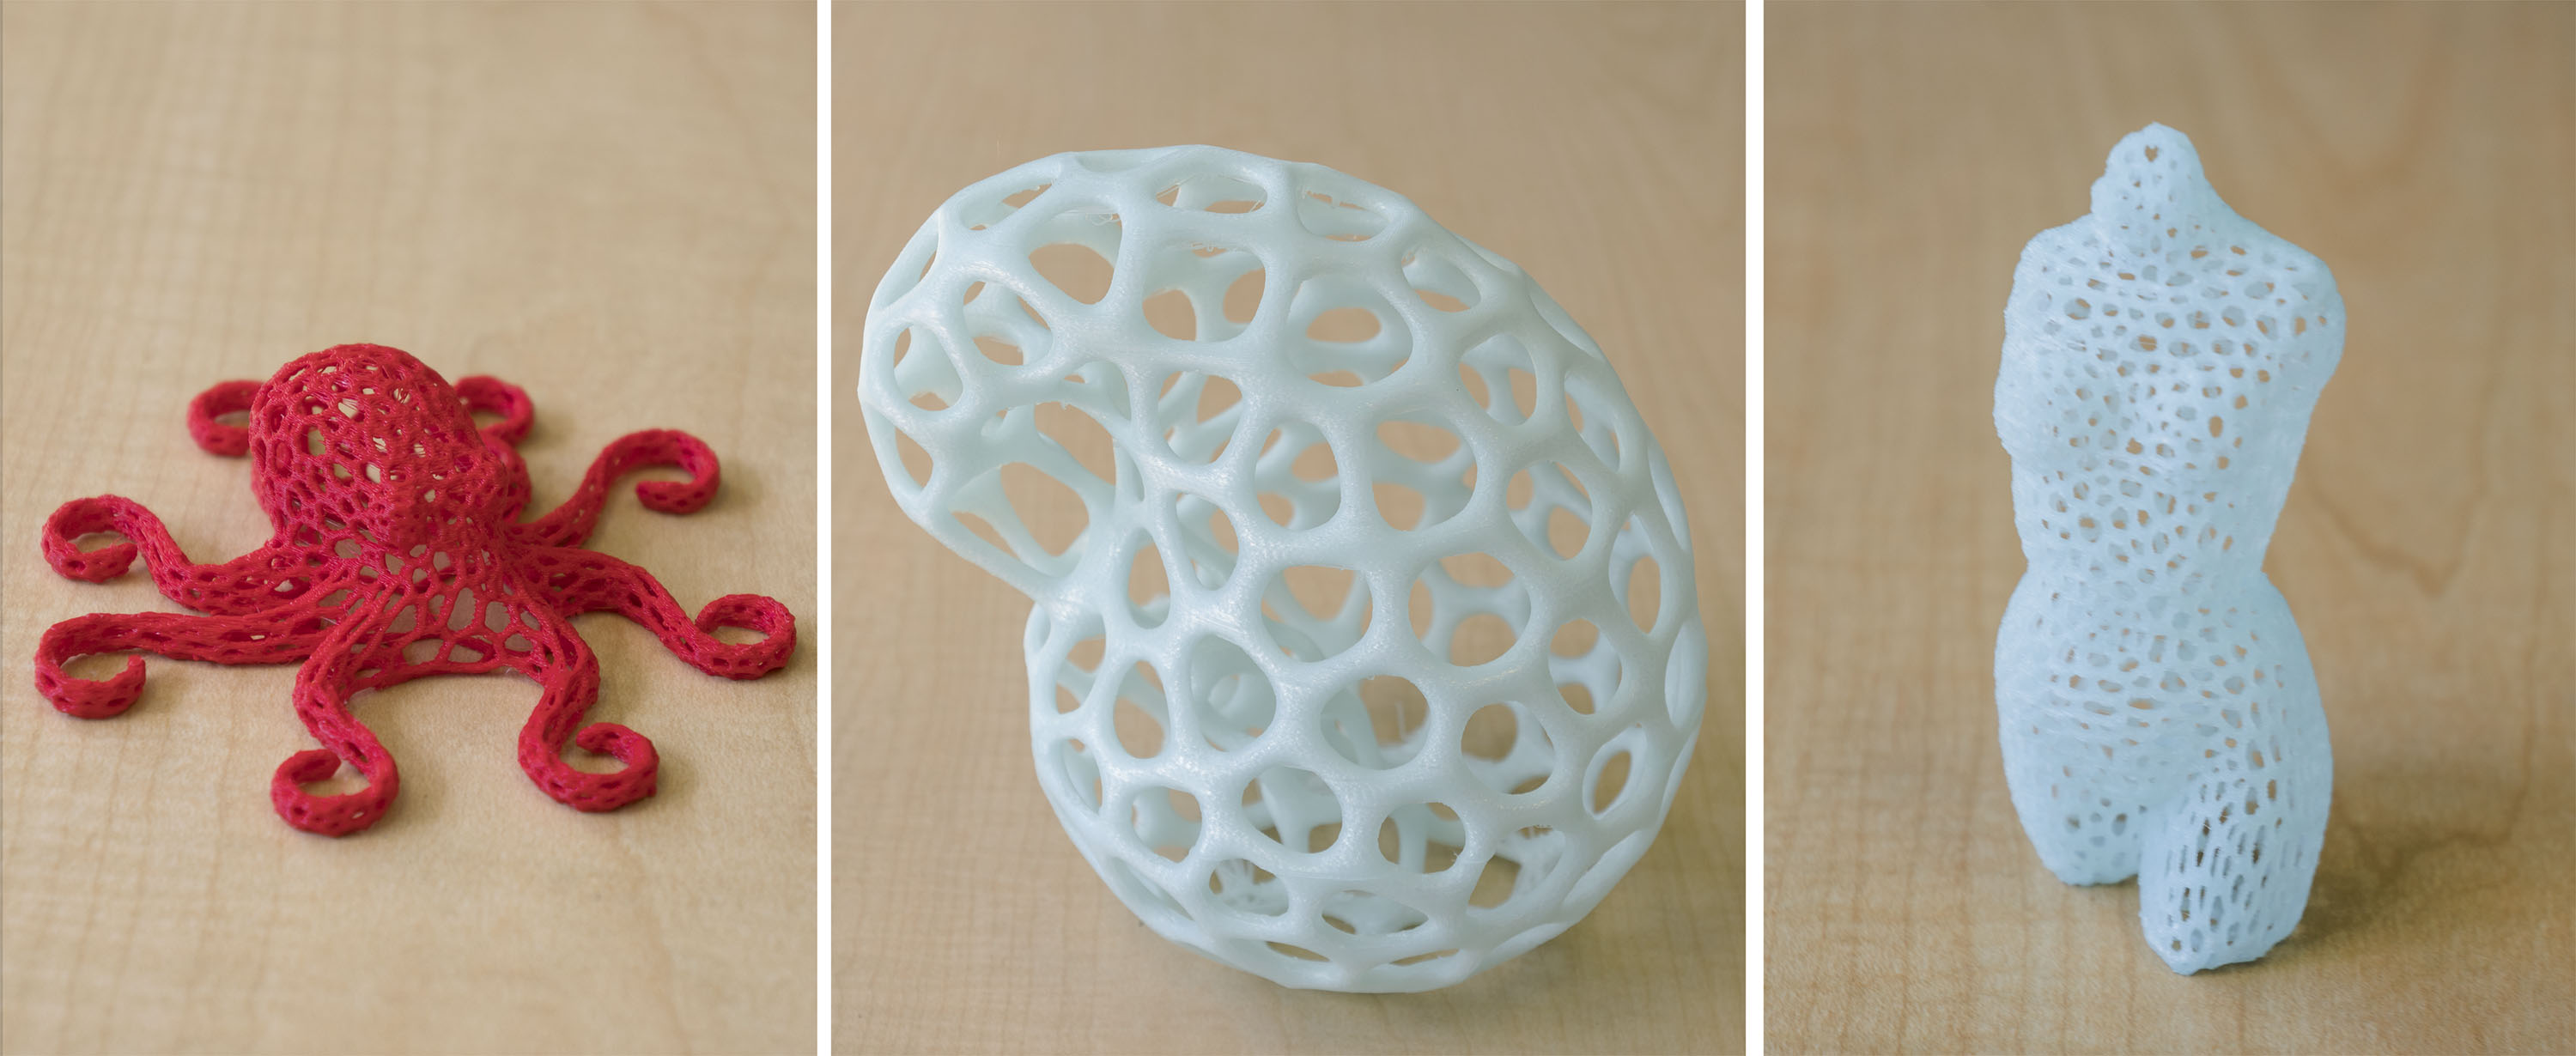 Three-dimensionally printed sculptures designed by integrated studio arts senior Sarah Reagan's group at the a2ru Emerging Creatives Student Summit